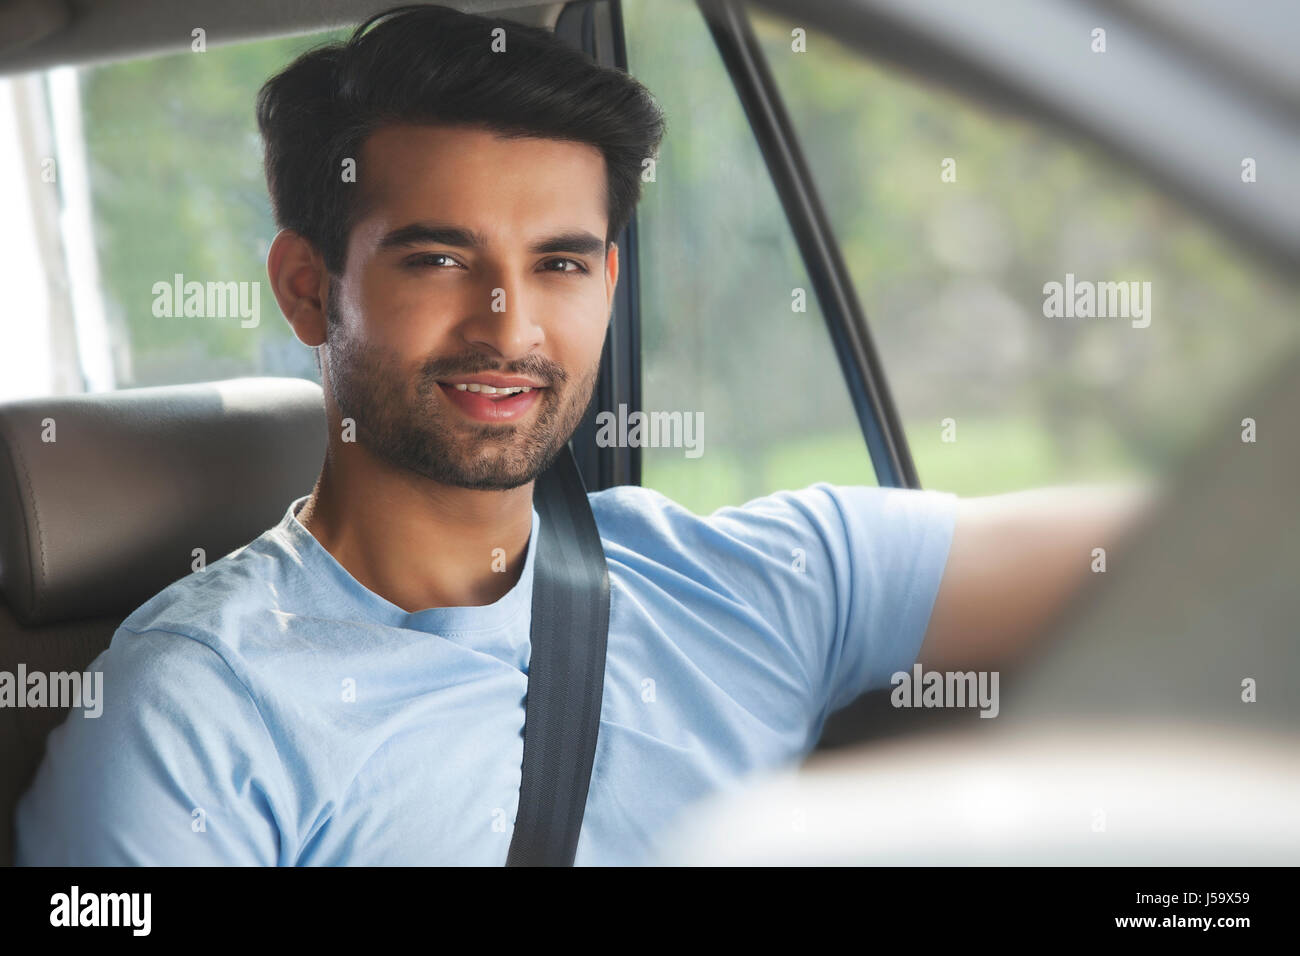 Portrait Of Young Man Sitting In Car   Stock Image